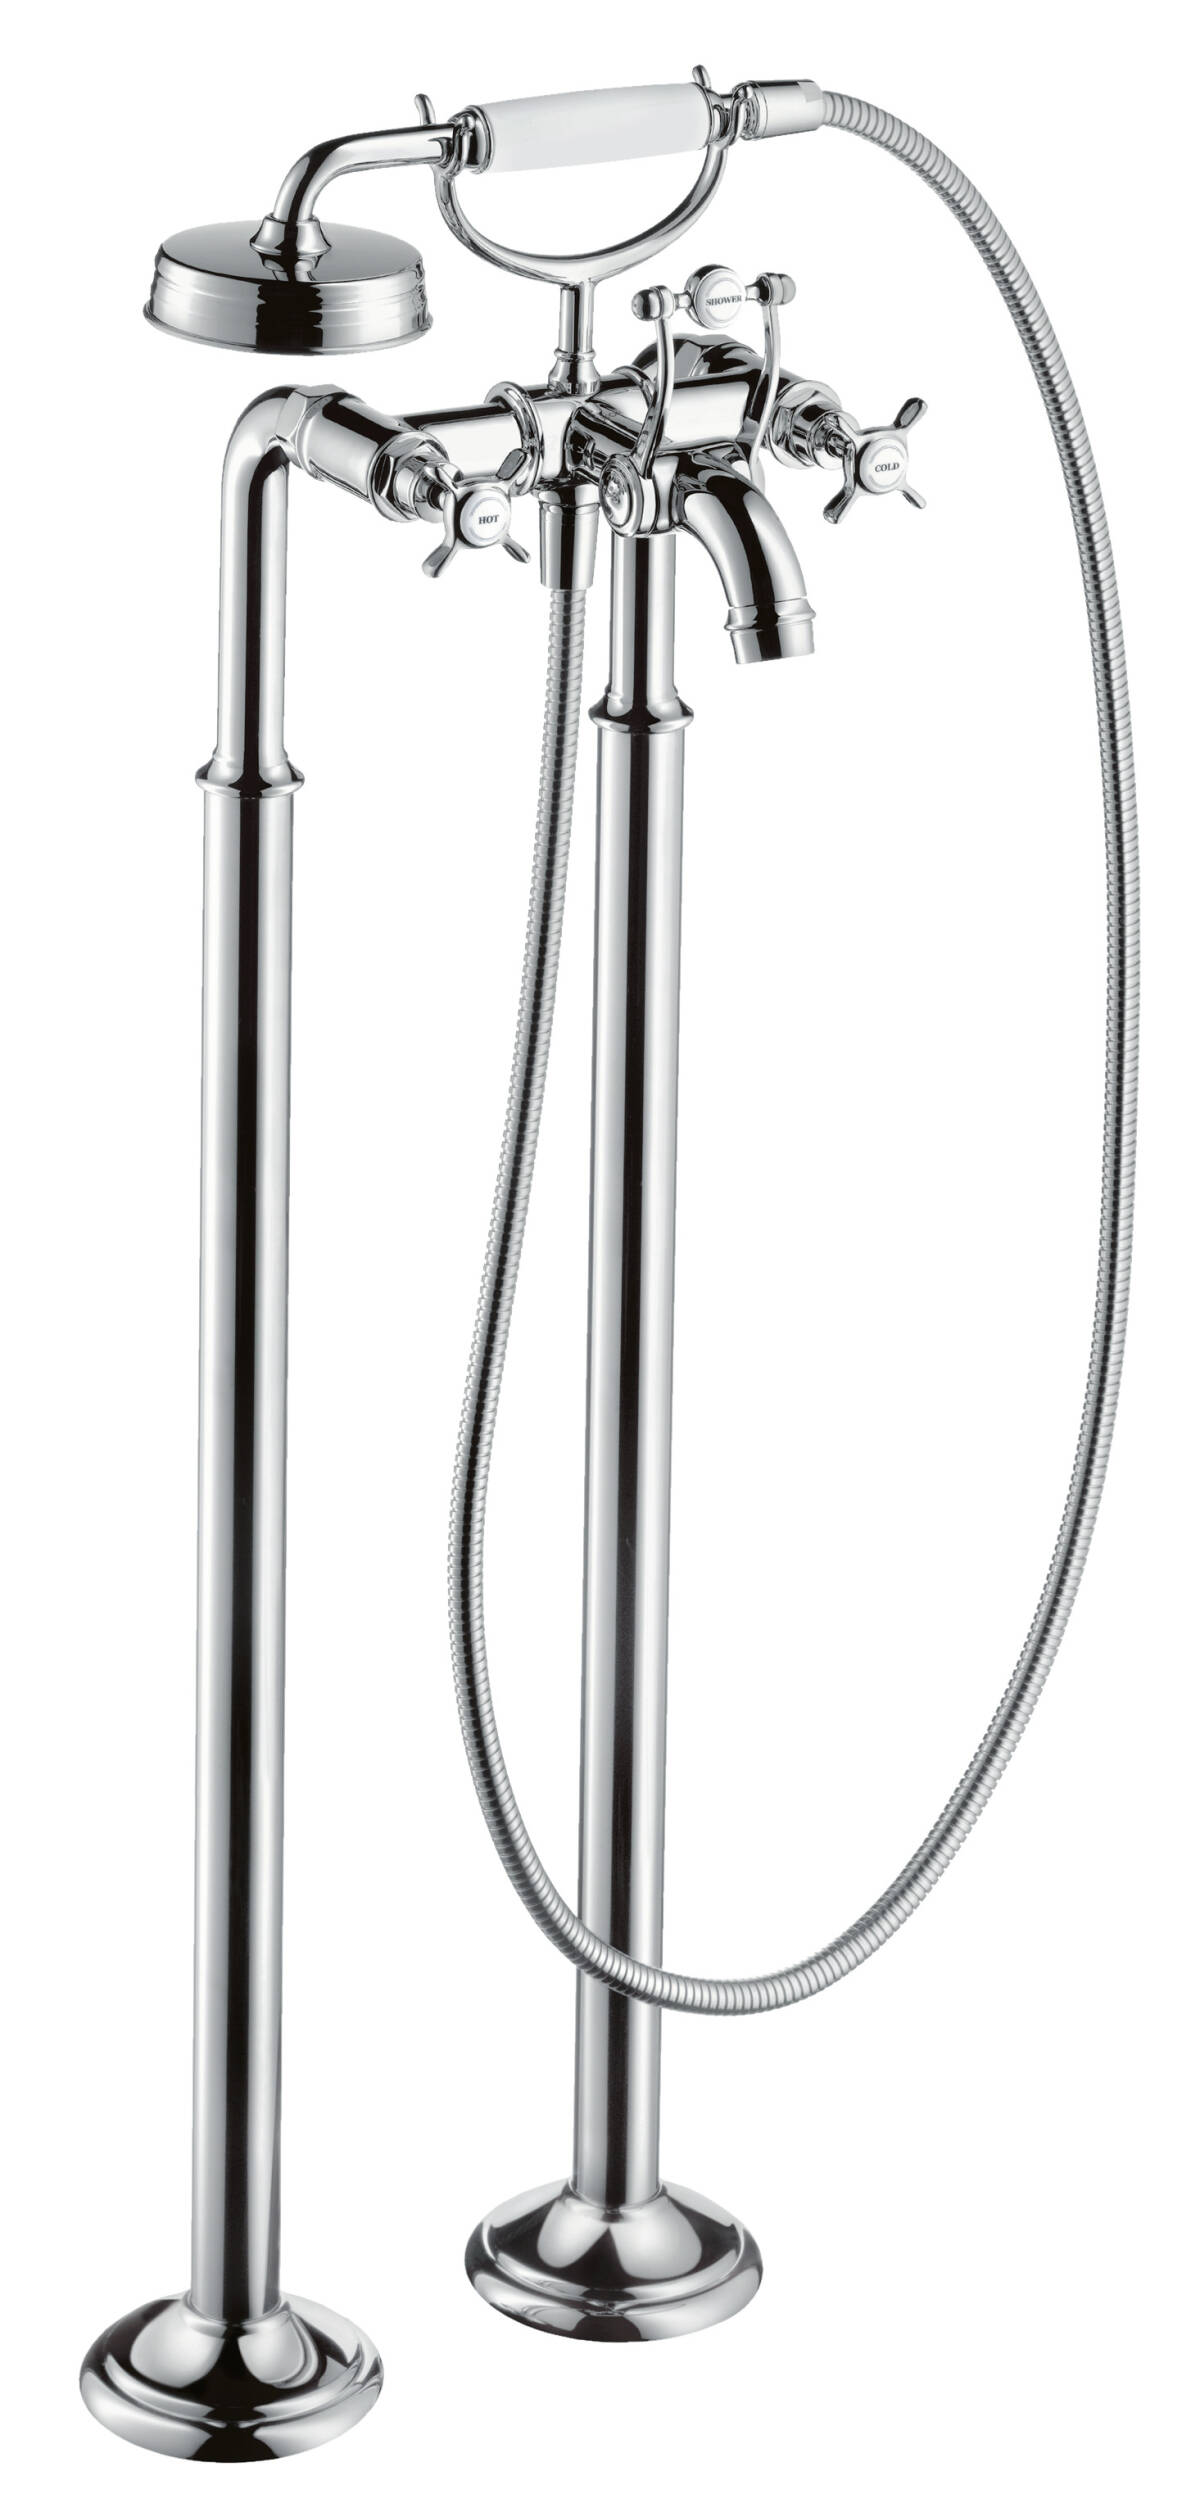 2-handle bath mixer floor-standing with cross handles, Polished Red Gold, 16547300